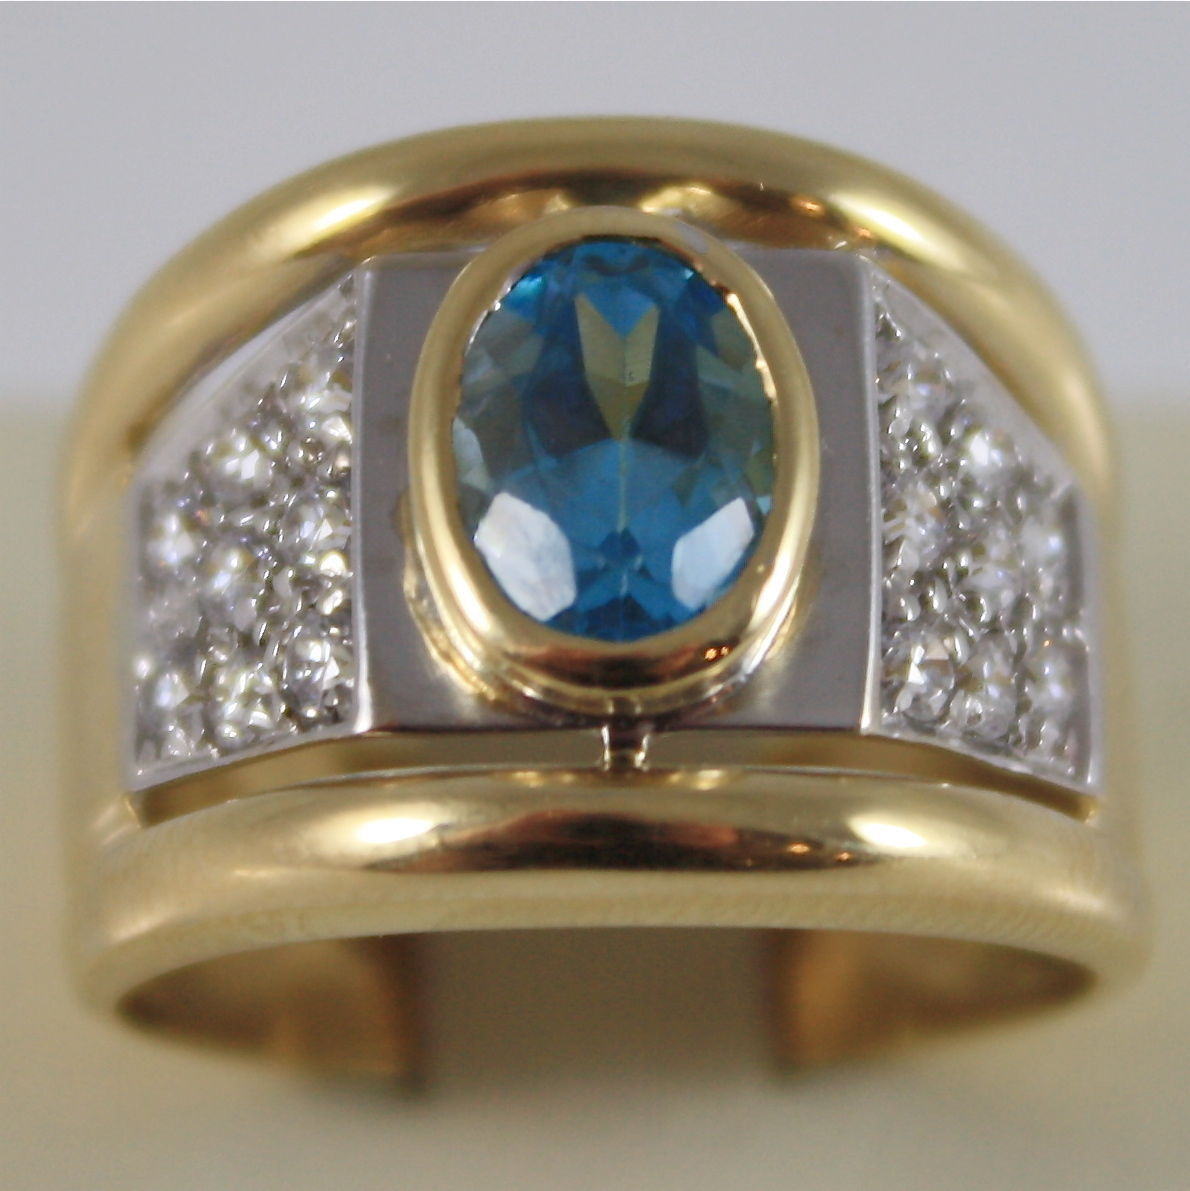 18K YELLOW WHITE SOLID GOLD 750 RING WITH BLUE TOPAZ AND ZIRCONIS MADE IN ITALY